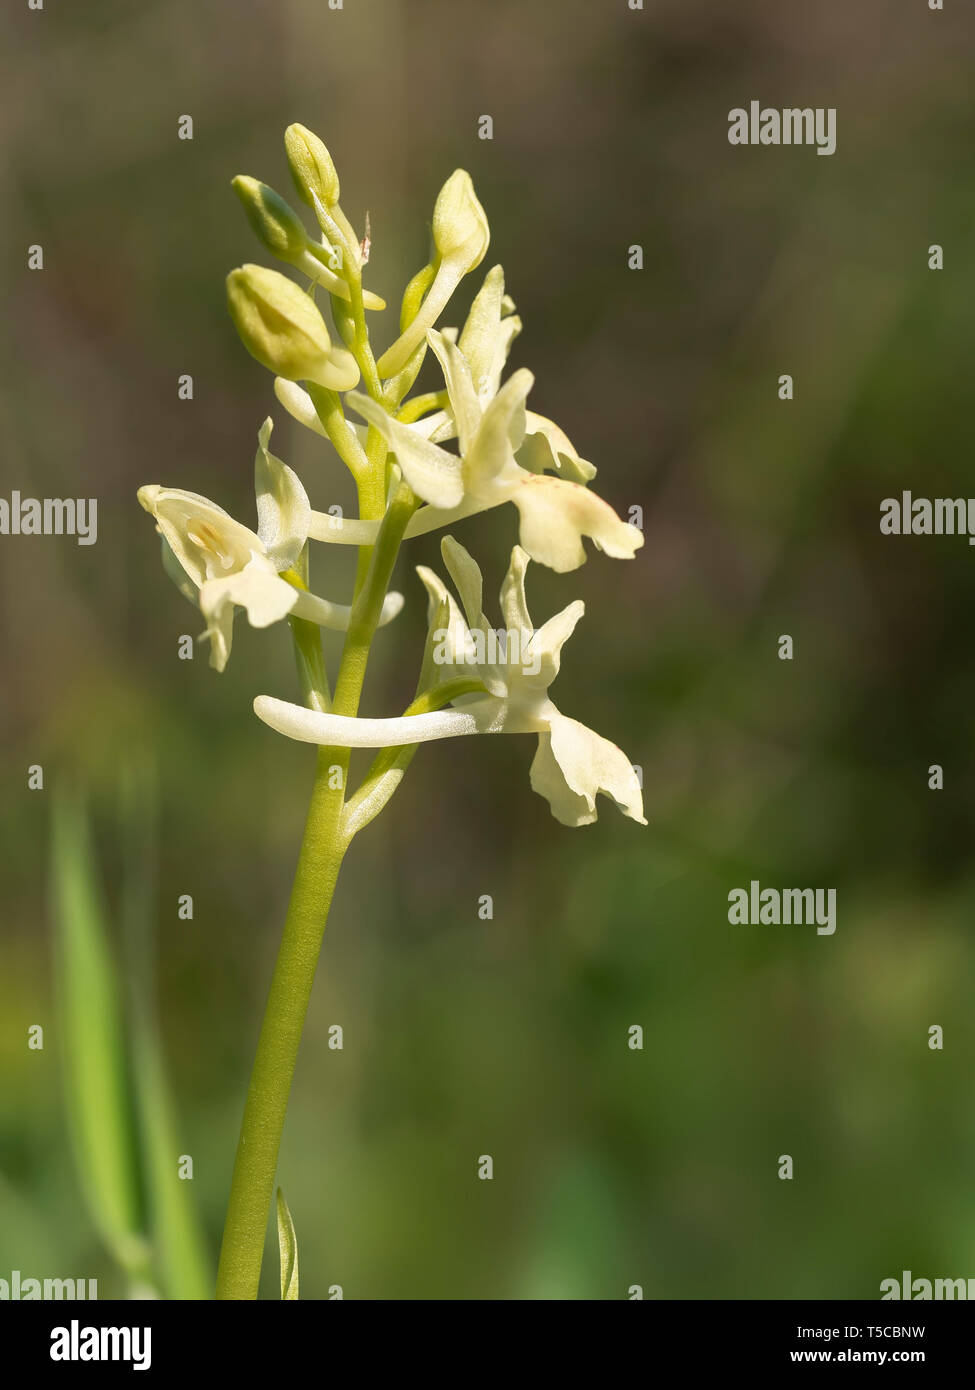 Orchis provincialis, pauciflora, the Provence orchid. Pale yellow wild flower, closeup detail. - Stock Image